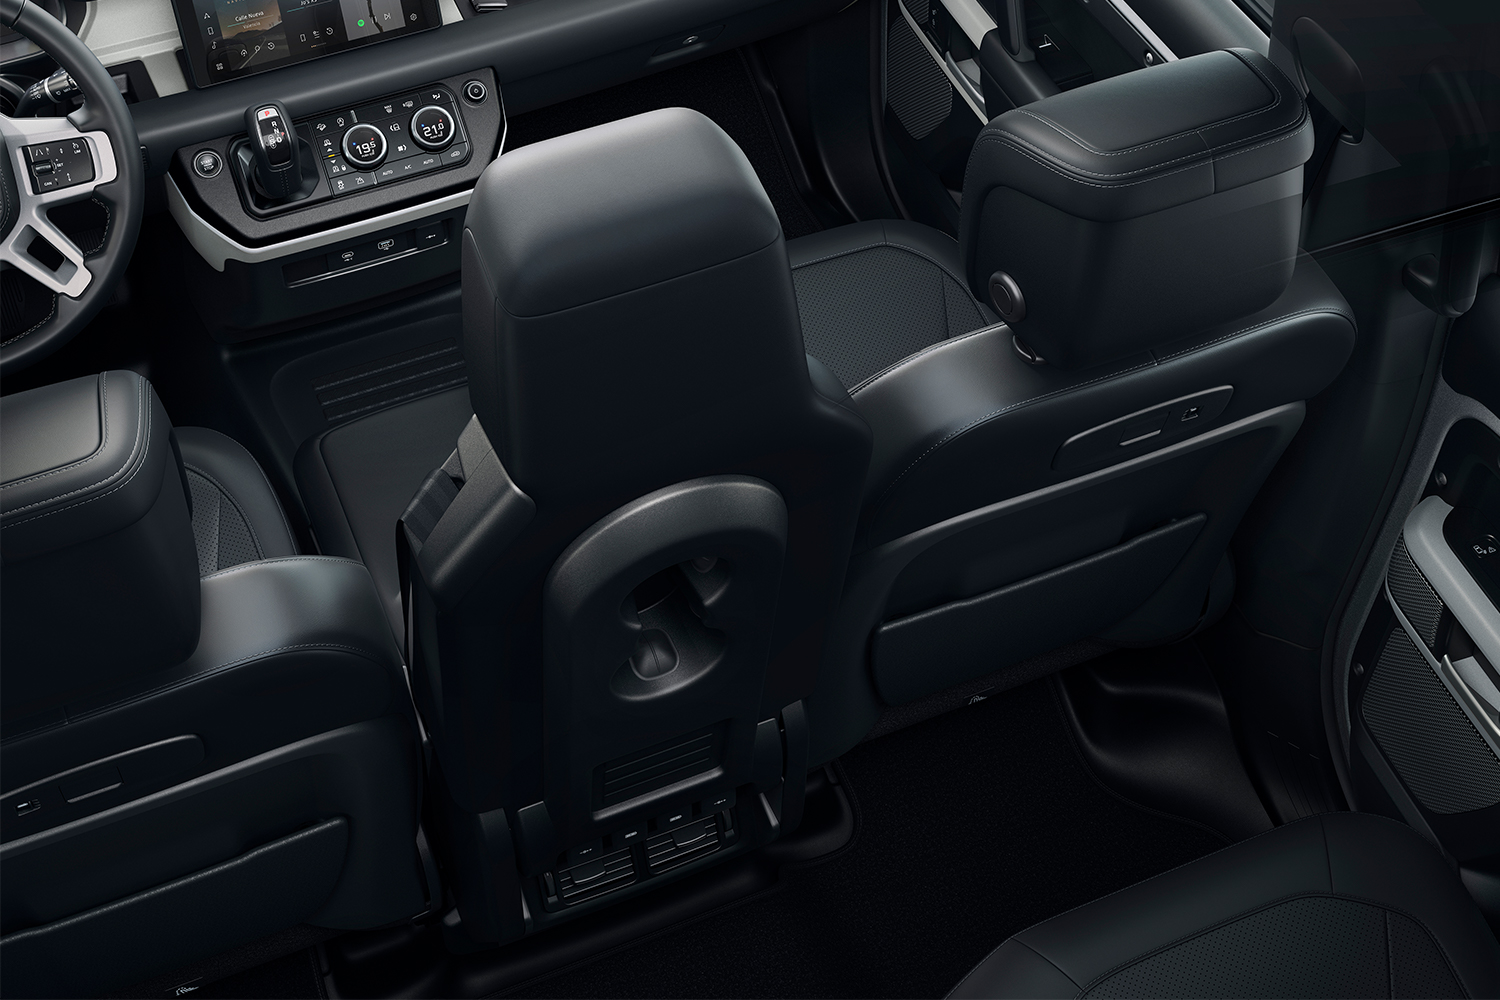 The available folding front jump seat in the 2021 Land Rover Defender 90 luxury SUV. After reviewing the vehicle, we think it would be a little too tight with the option.